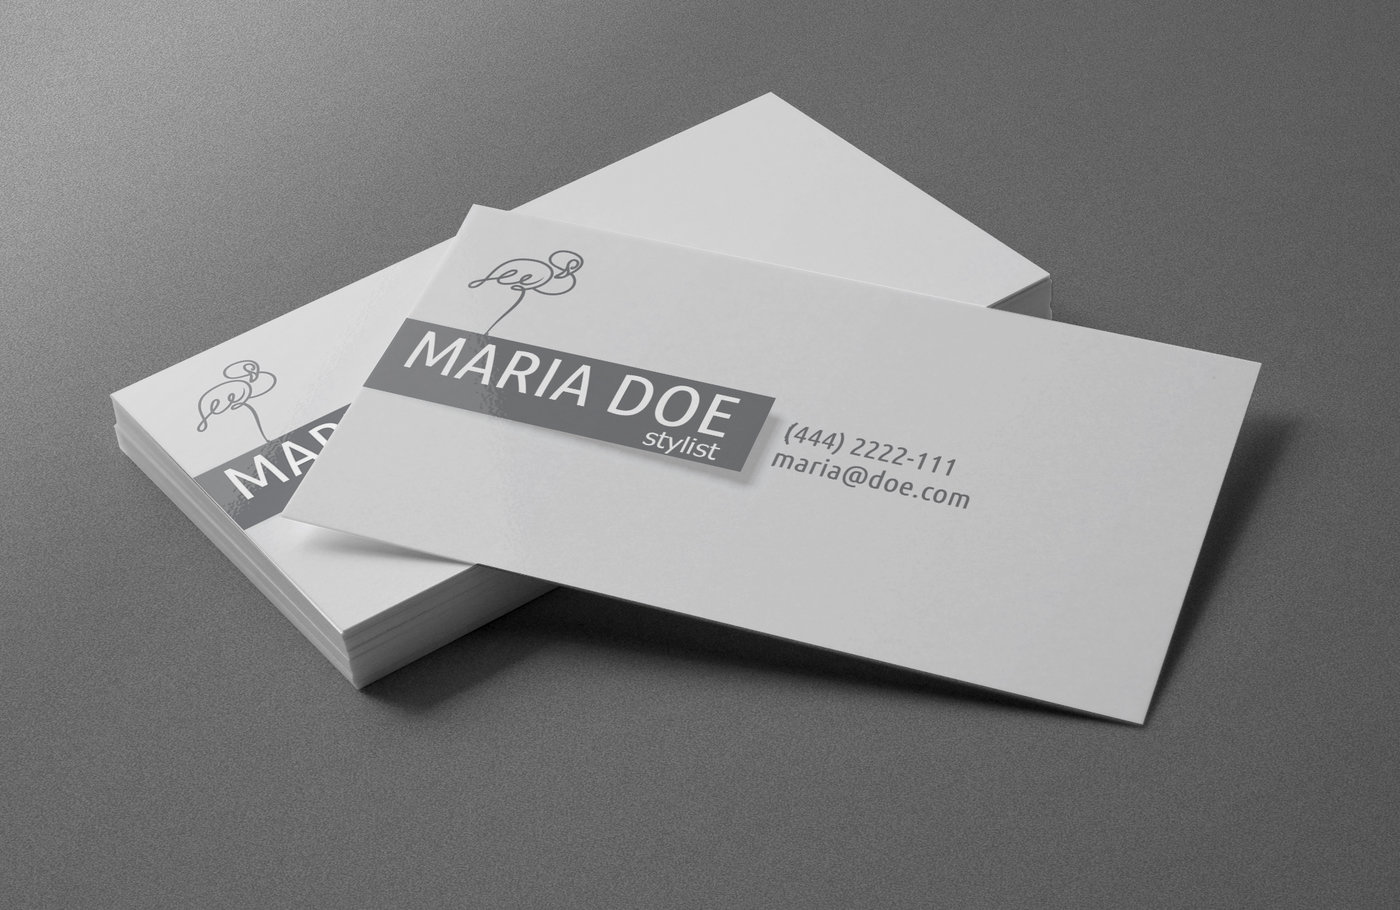 personal stylist business cards free template by borce markoski at coroflotcom - Stylist Business Cards